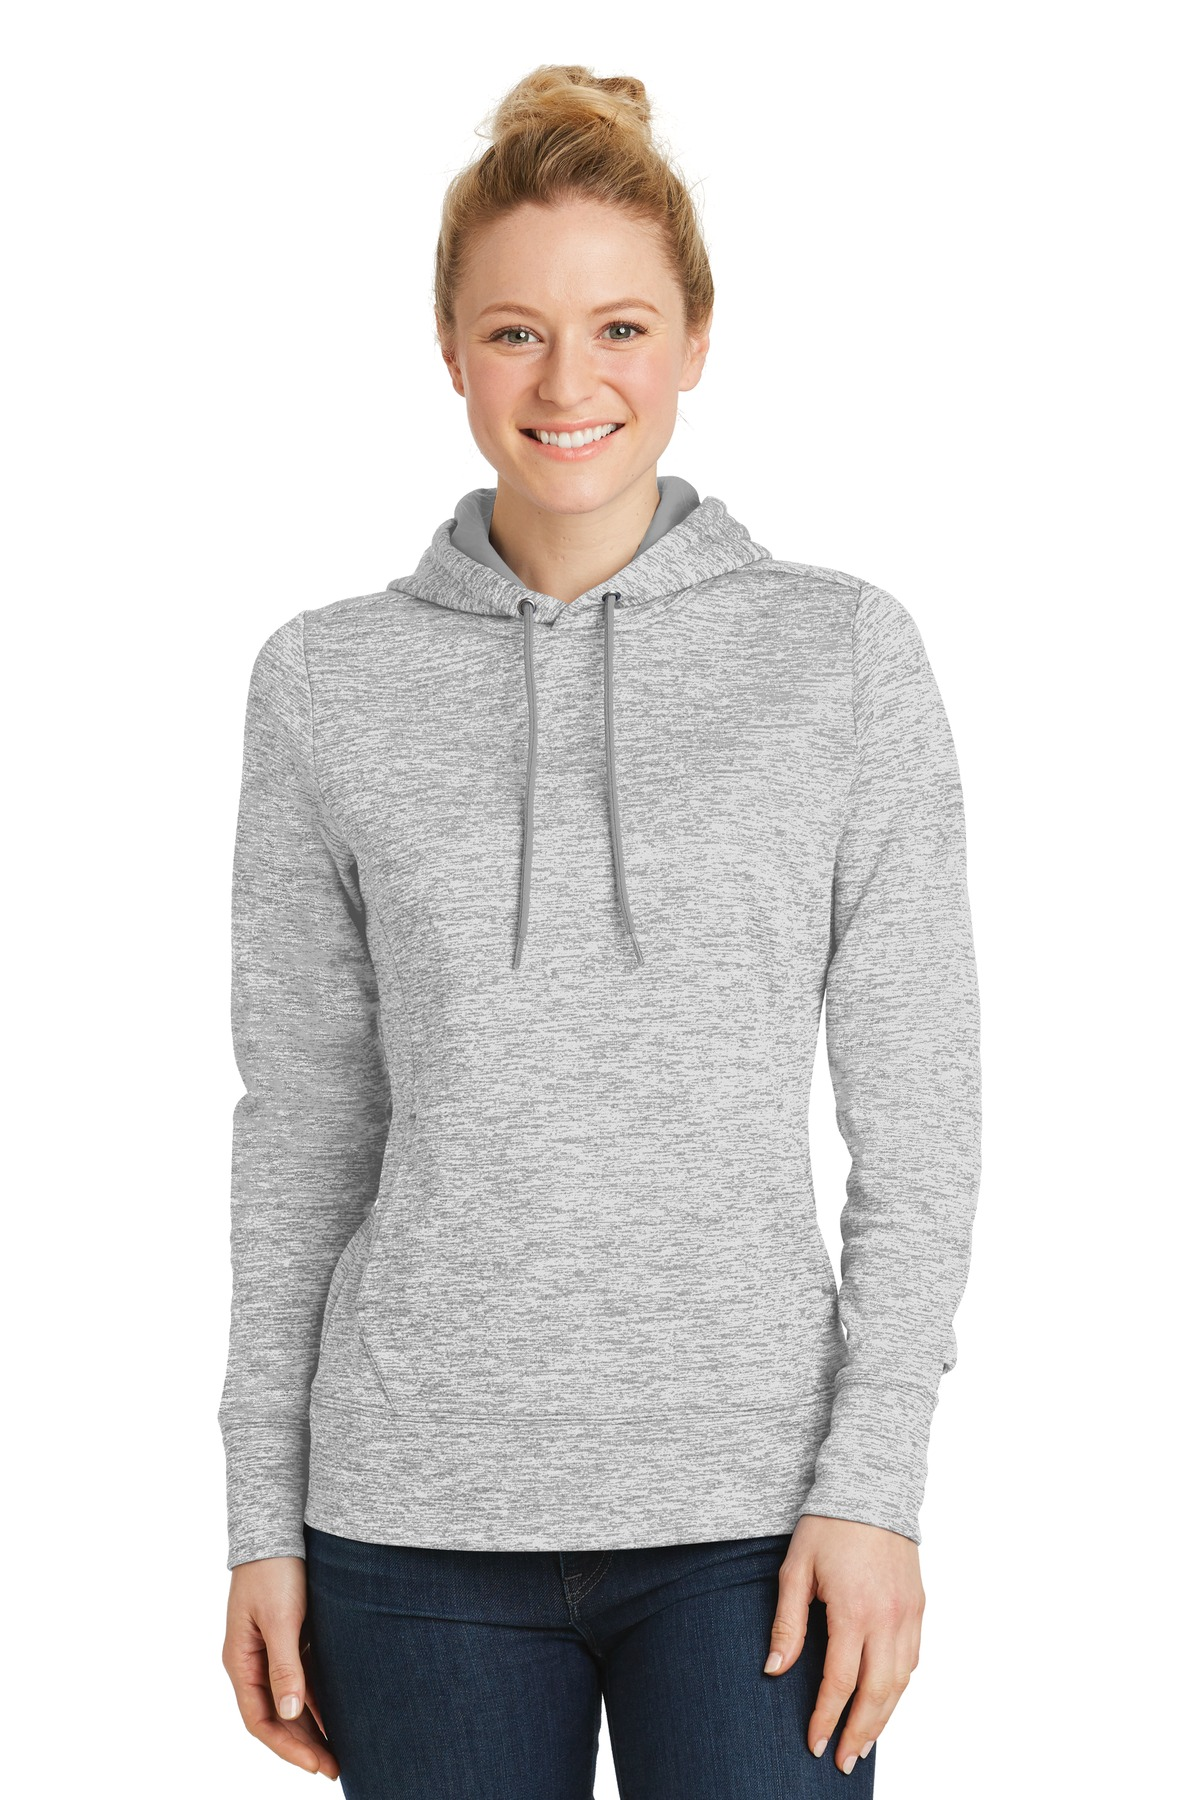 Sport-Tek ®  Ladies PosiCharge ®  Electric Heather Fleece Hooded Pullover. LST225 - Silver Electric